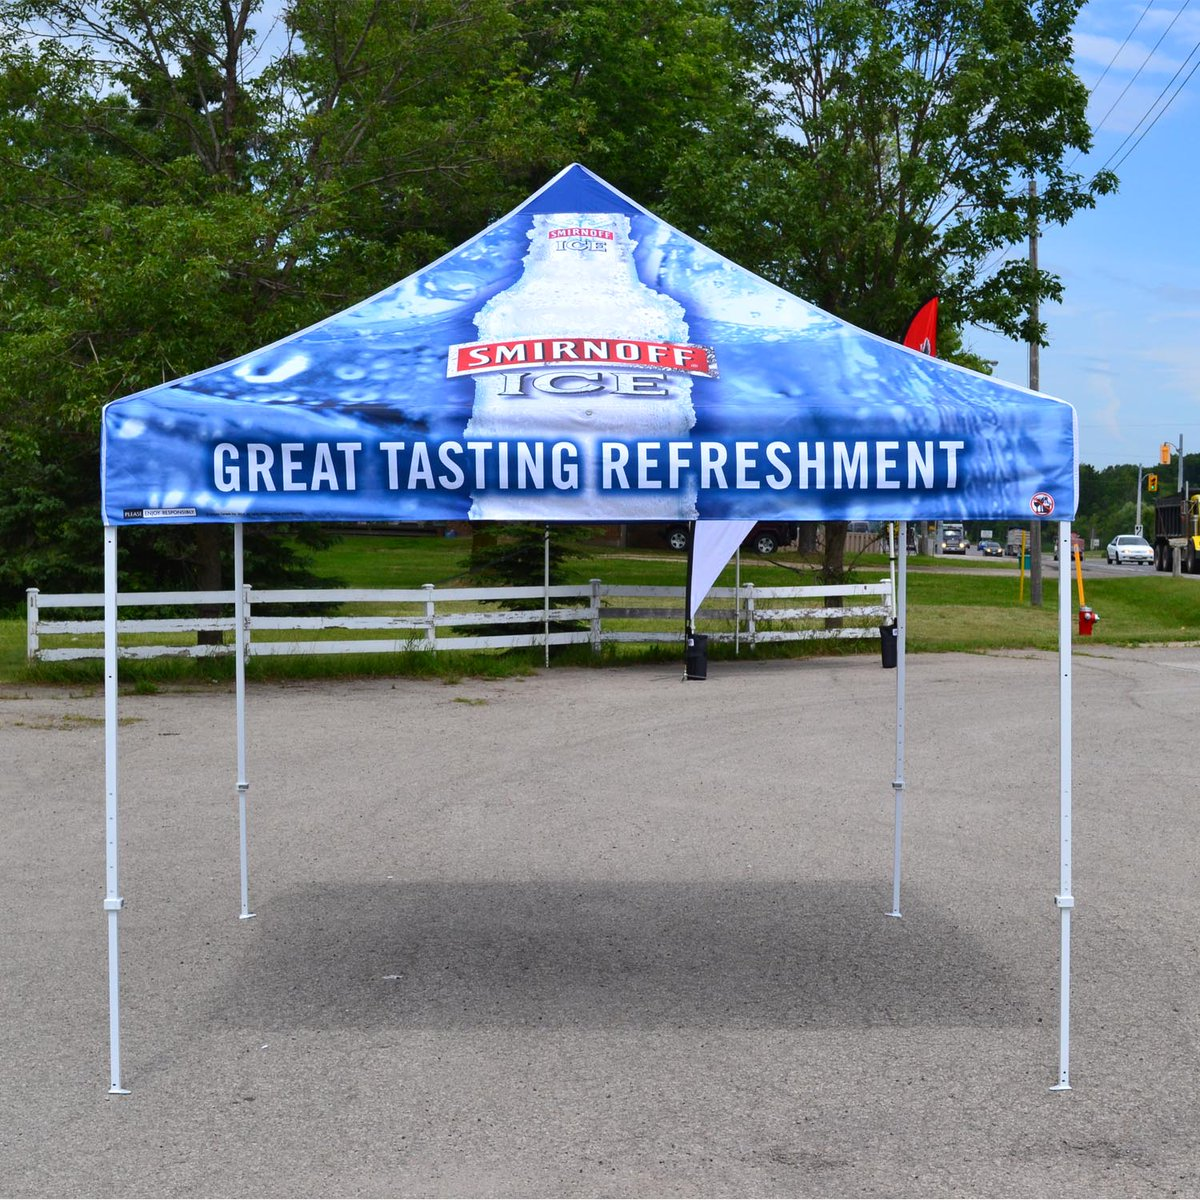 Have an event and need a tent? give us a call #softsigns #smirnoff #tents #event #eventplanning